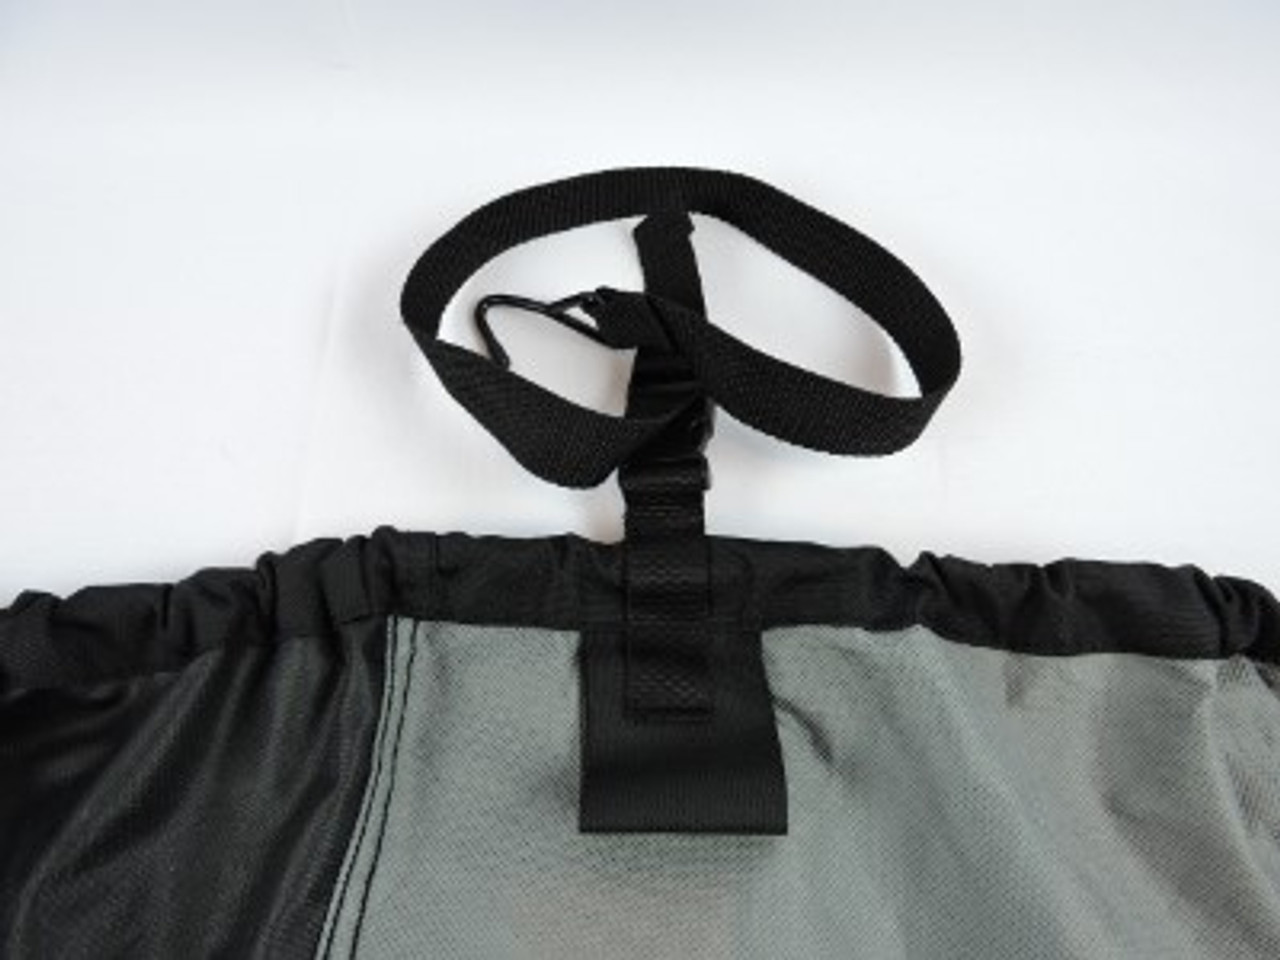 Nanook multi strap and buckle system